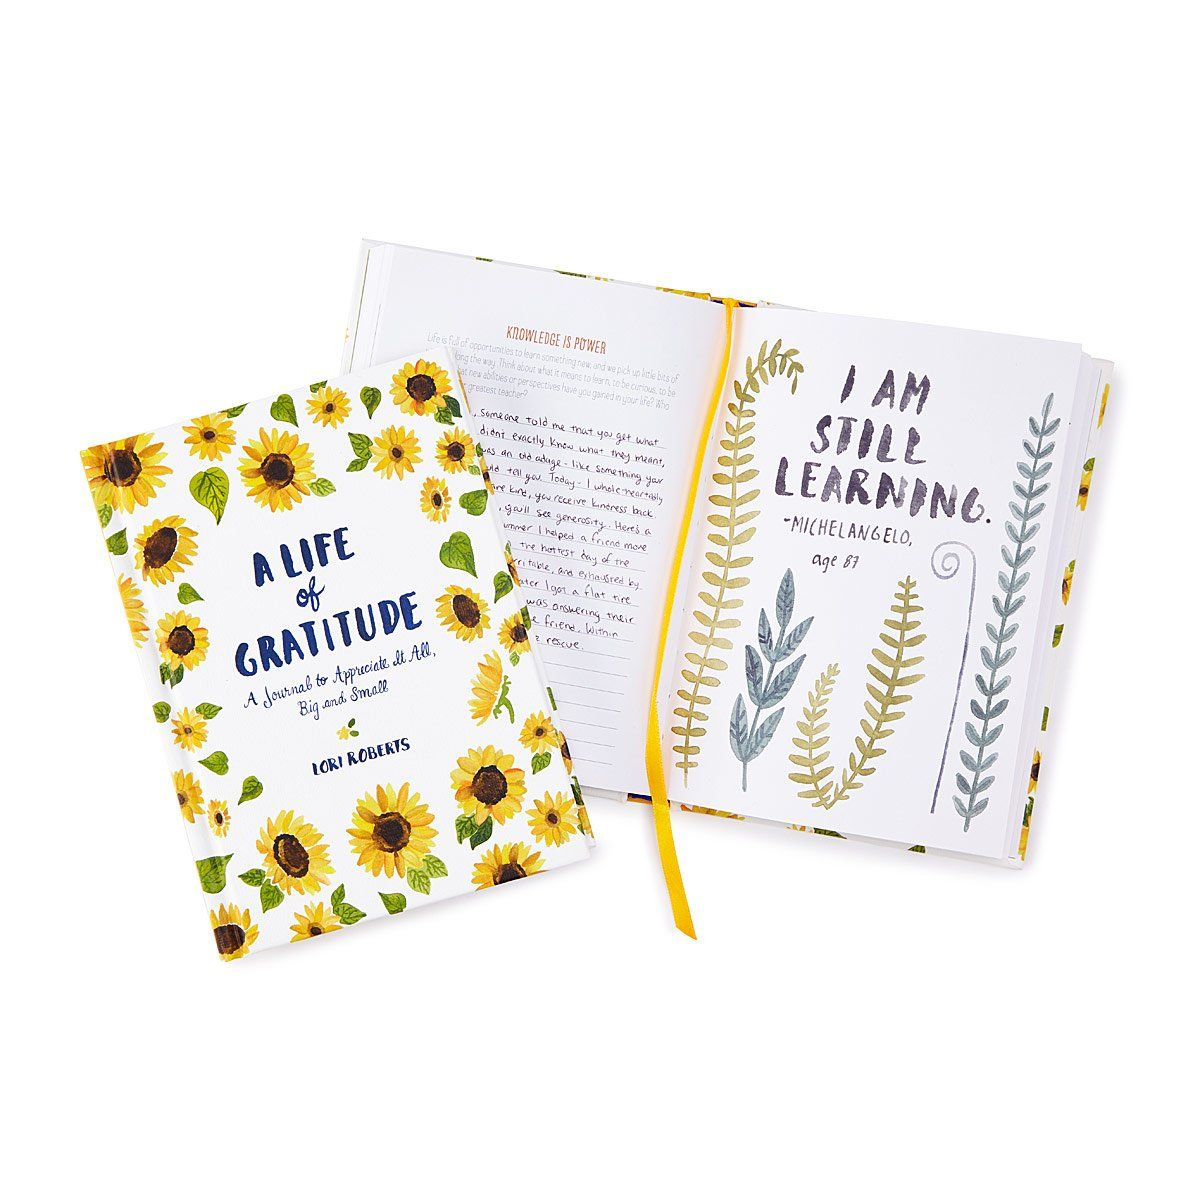 A Life of Gratitude Journal Mindfulness Gifts